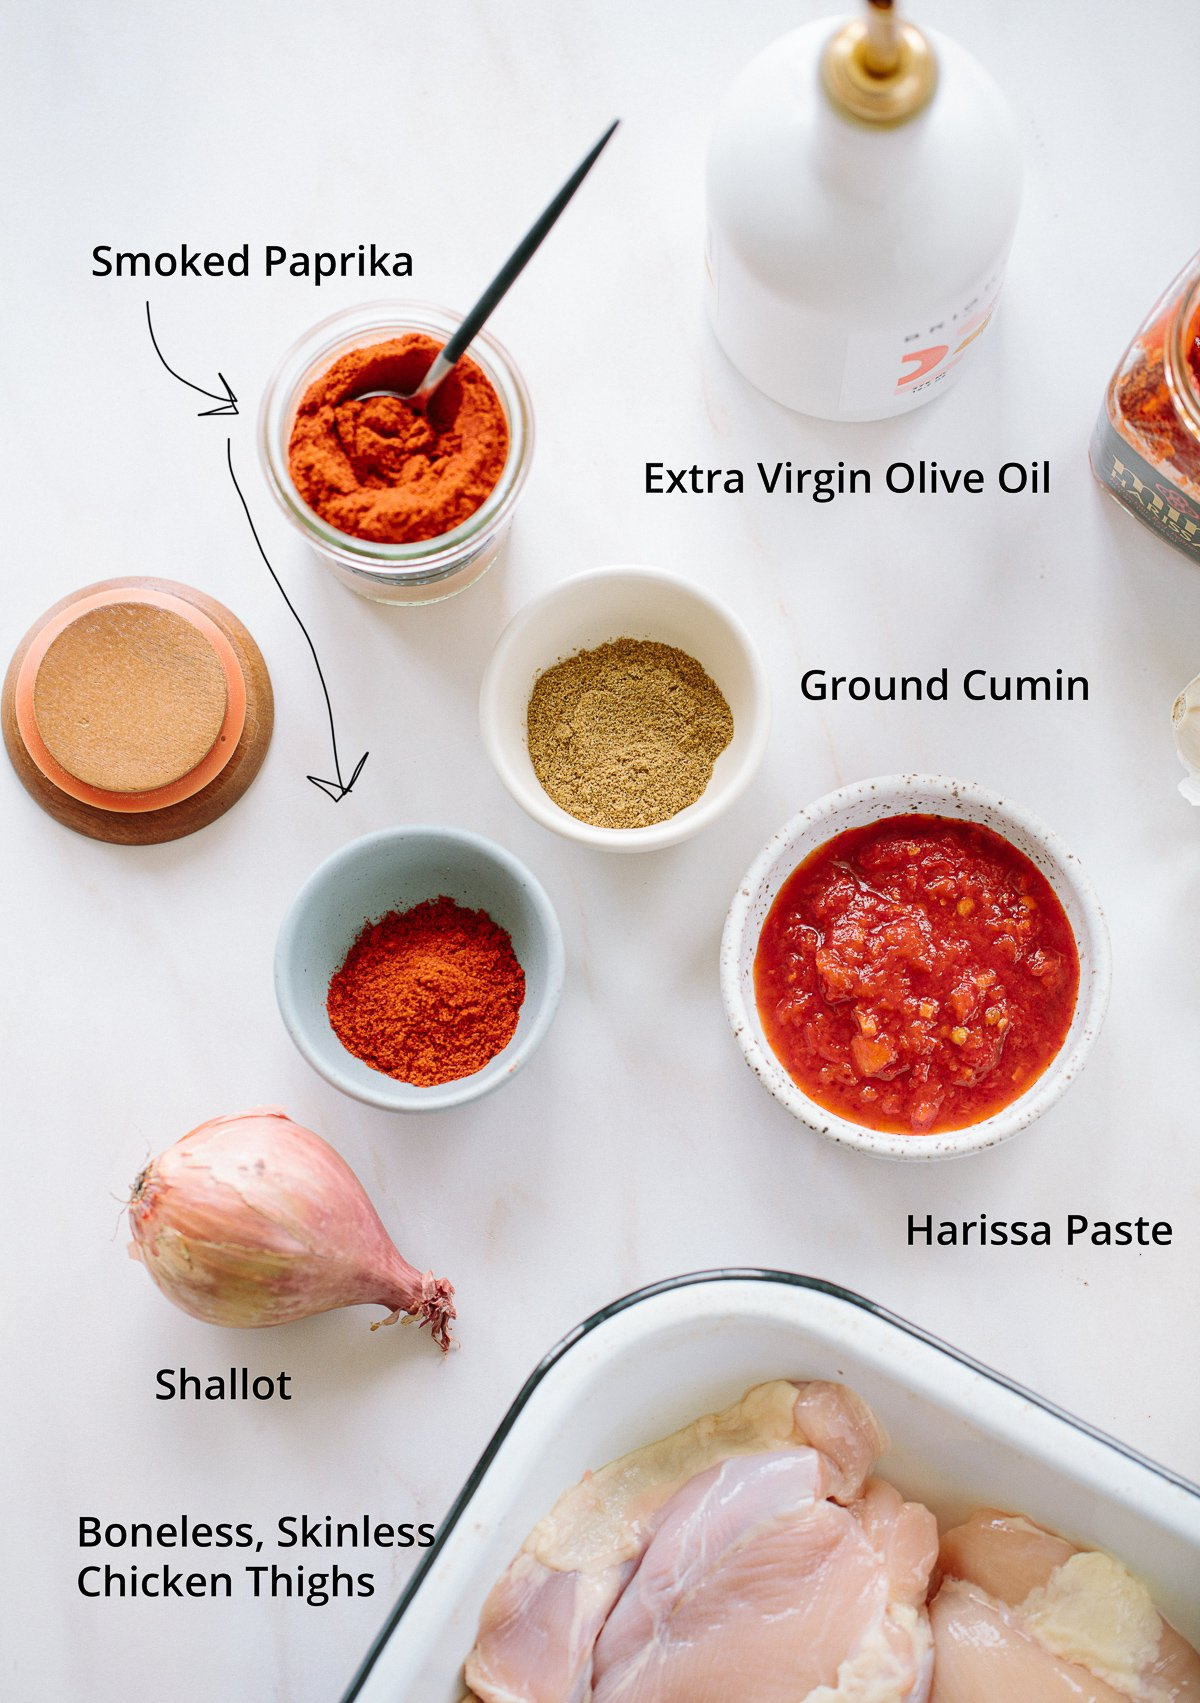 An overhead image of ingredients needed to make baked harissa chicken, with harissa paste, cumin and paprika in small bowls